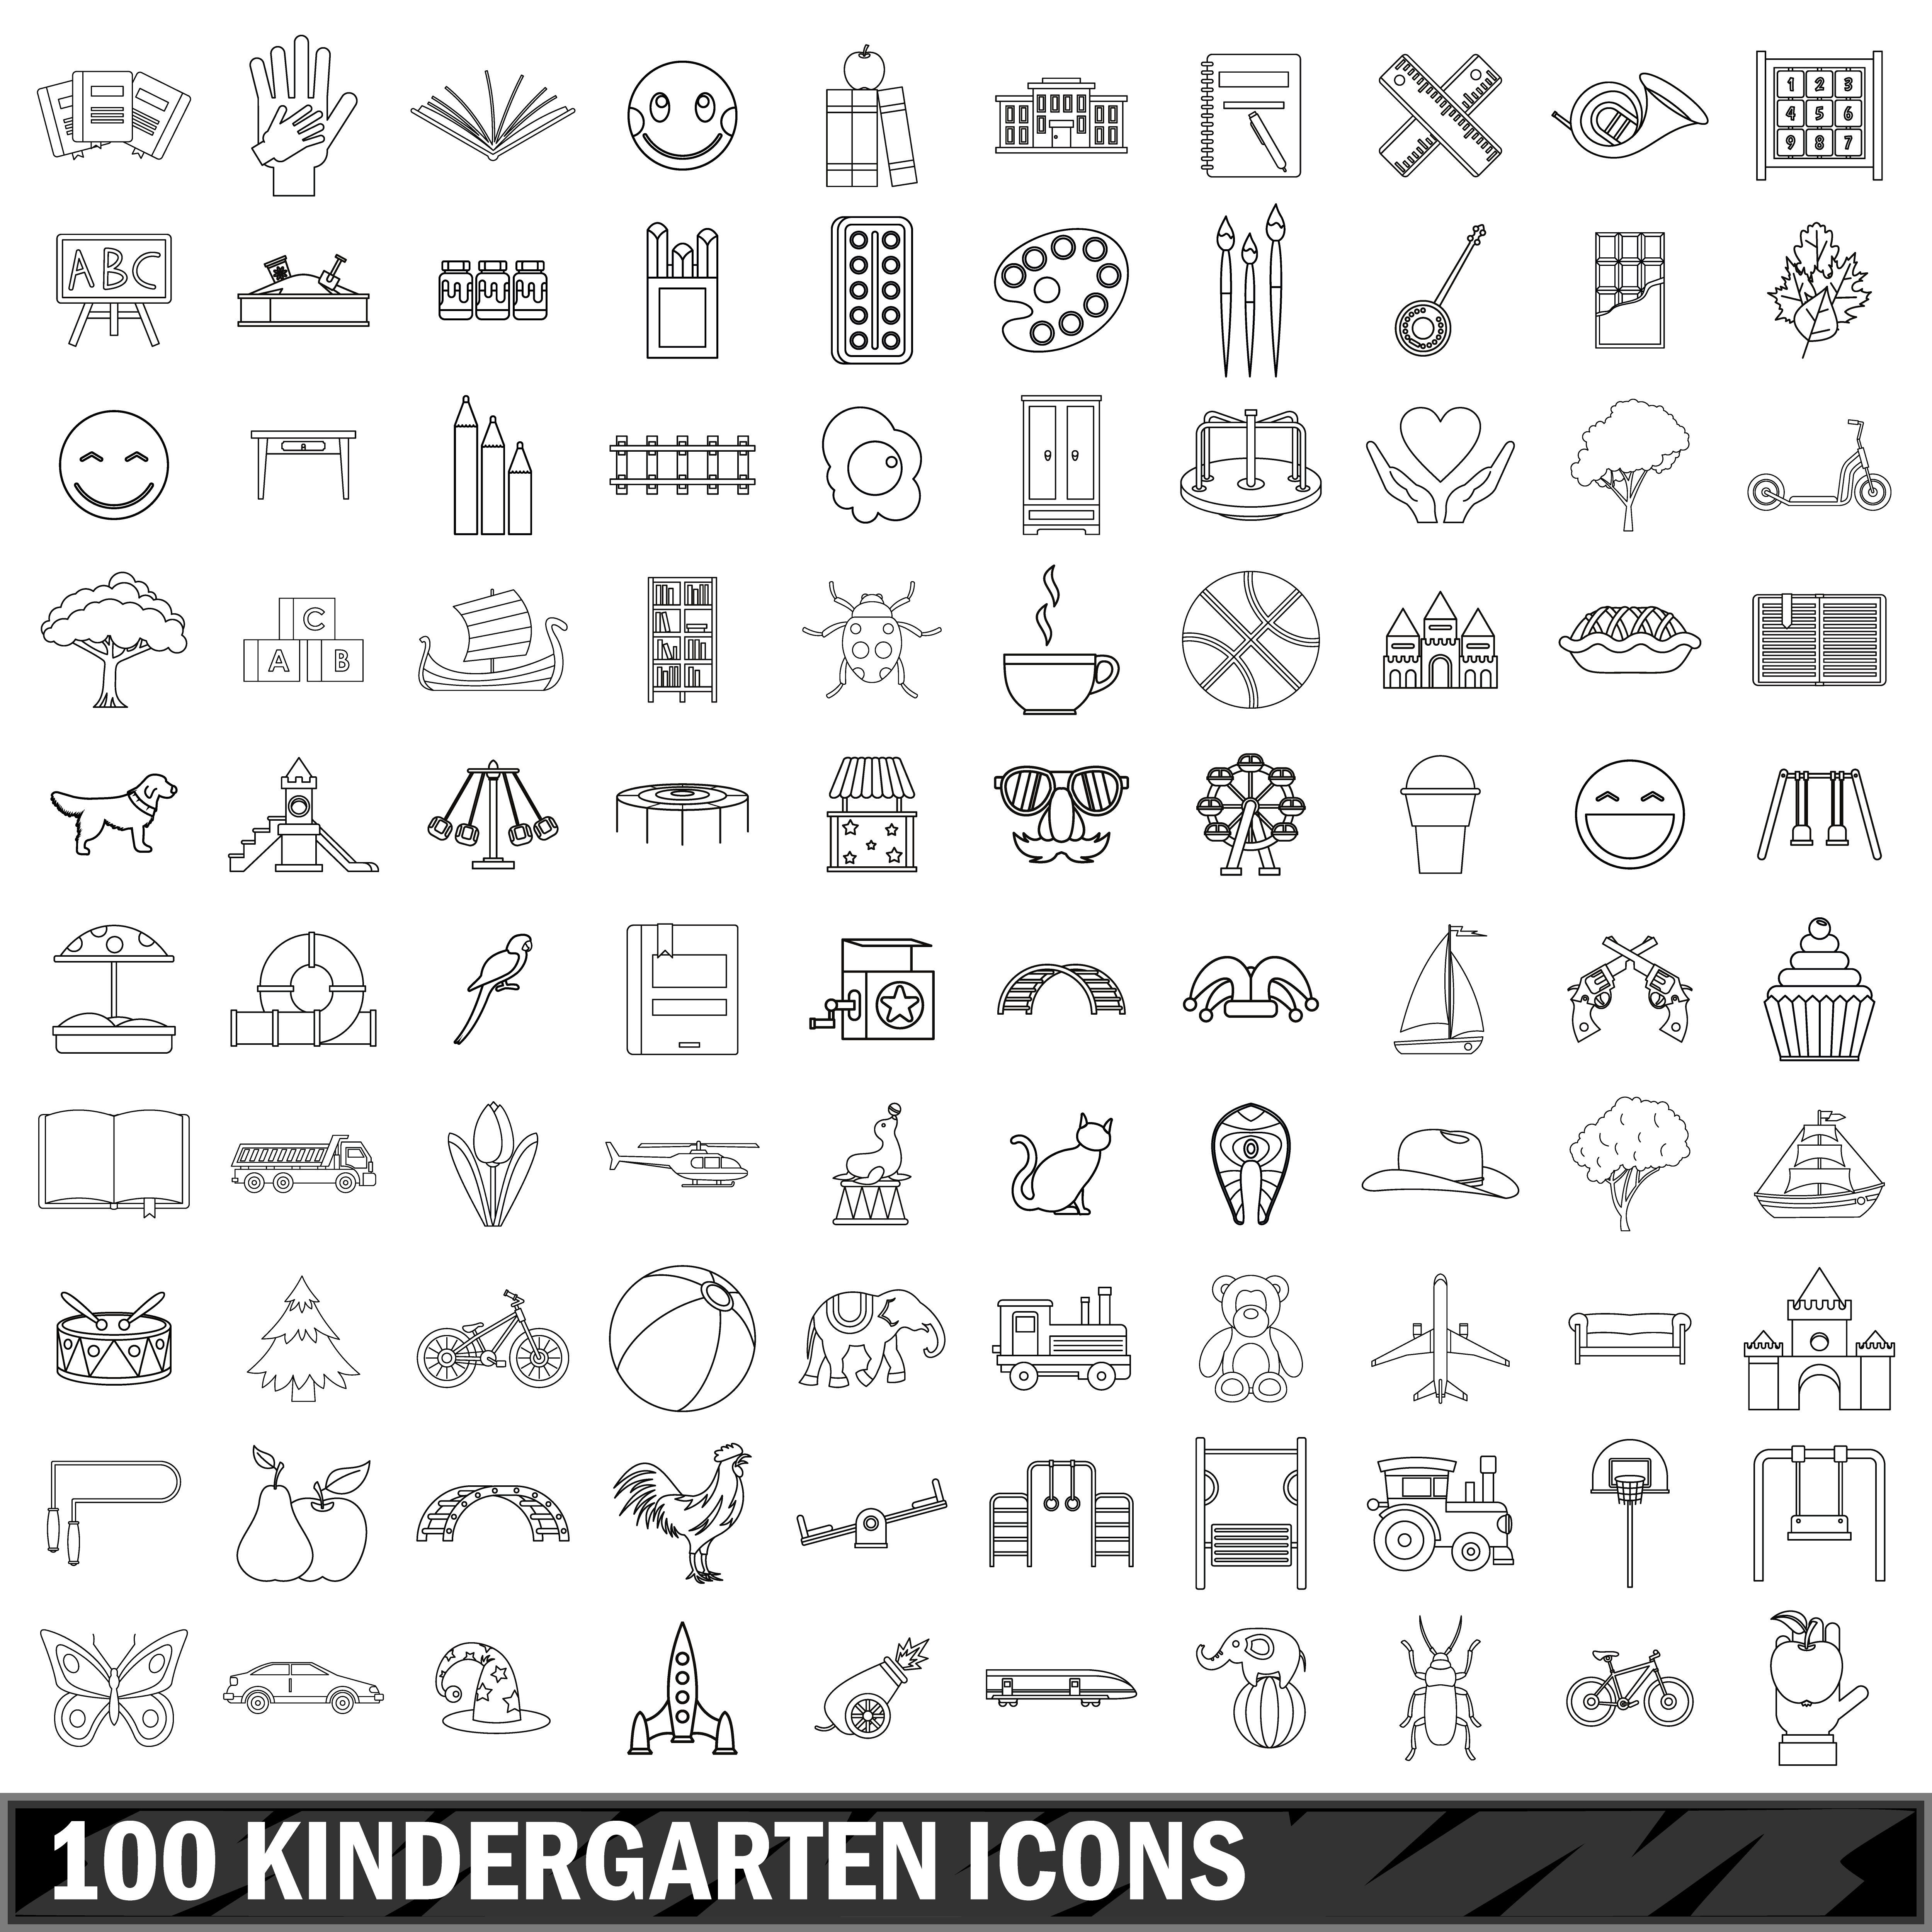 100 kindergarten icons set, outline style By Ylivdesign